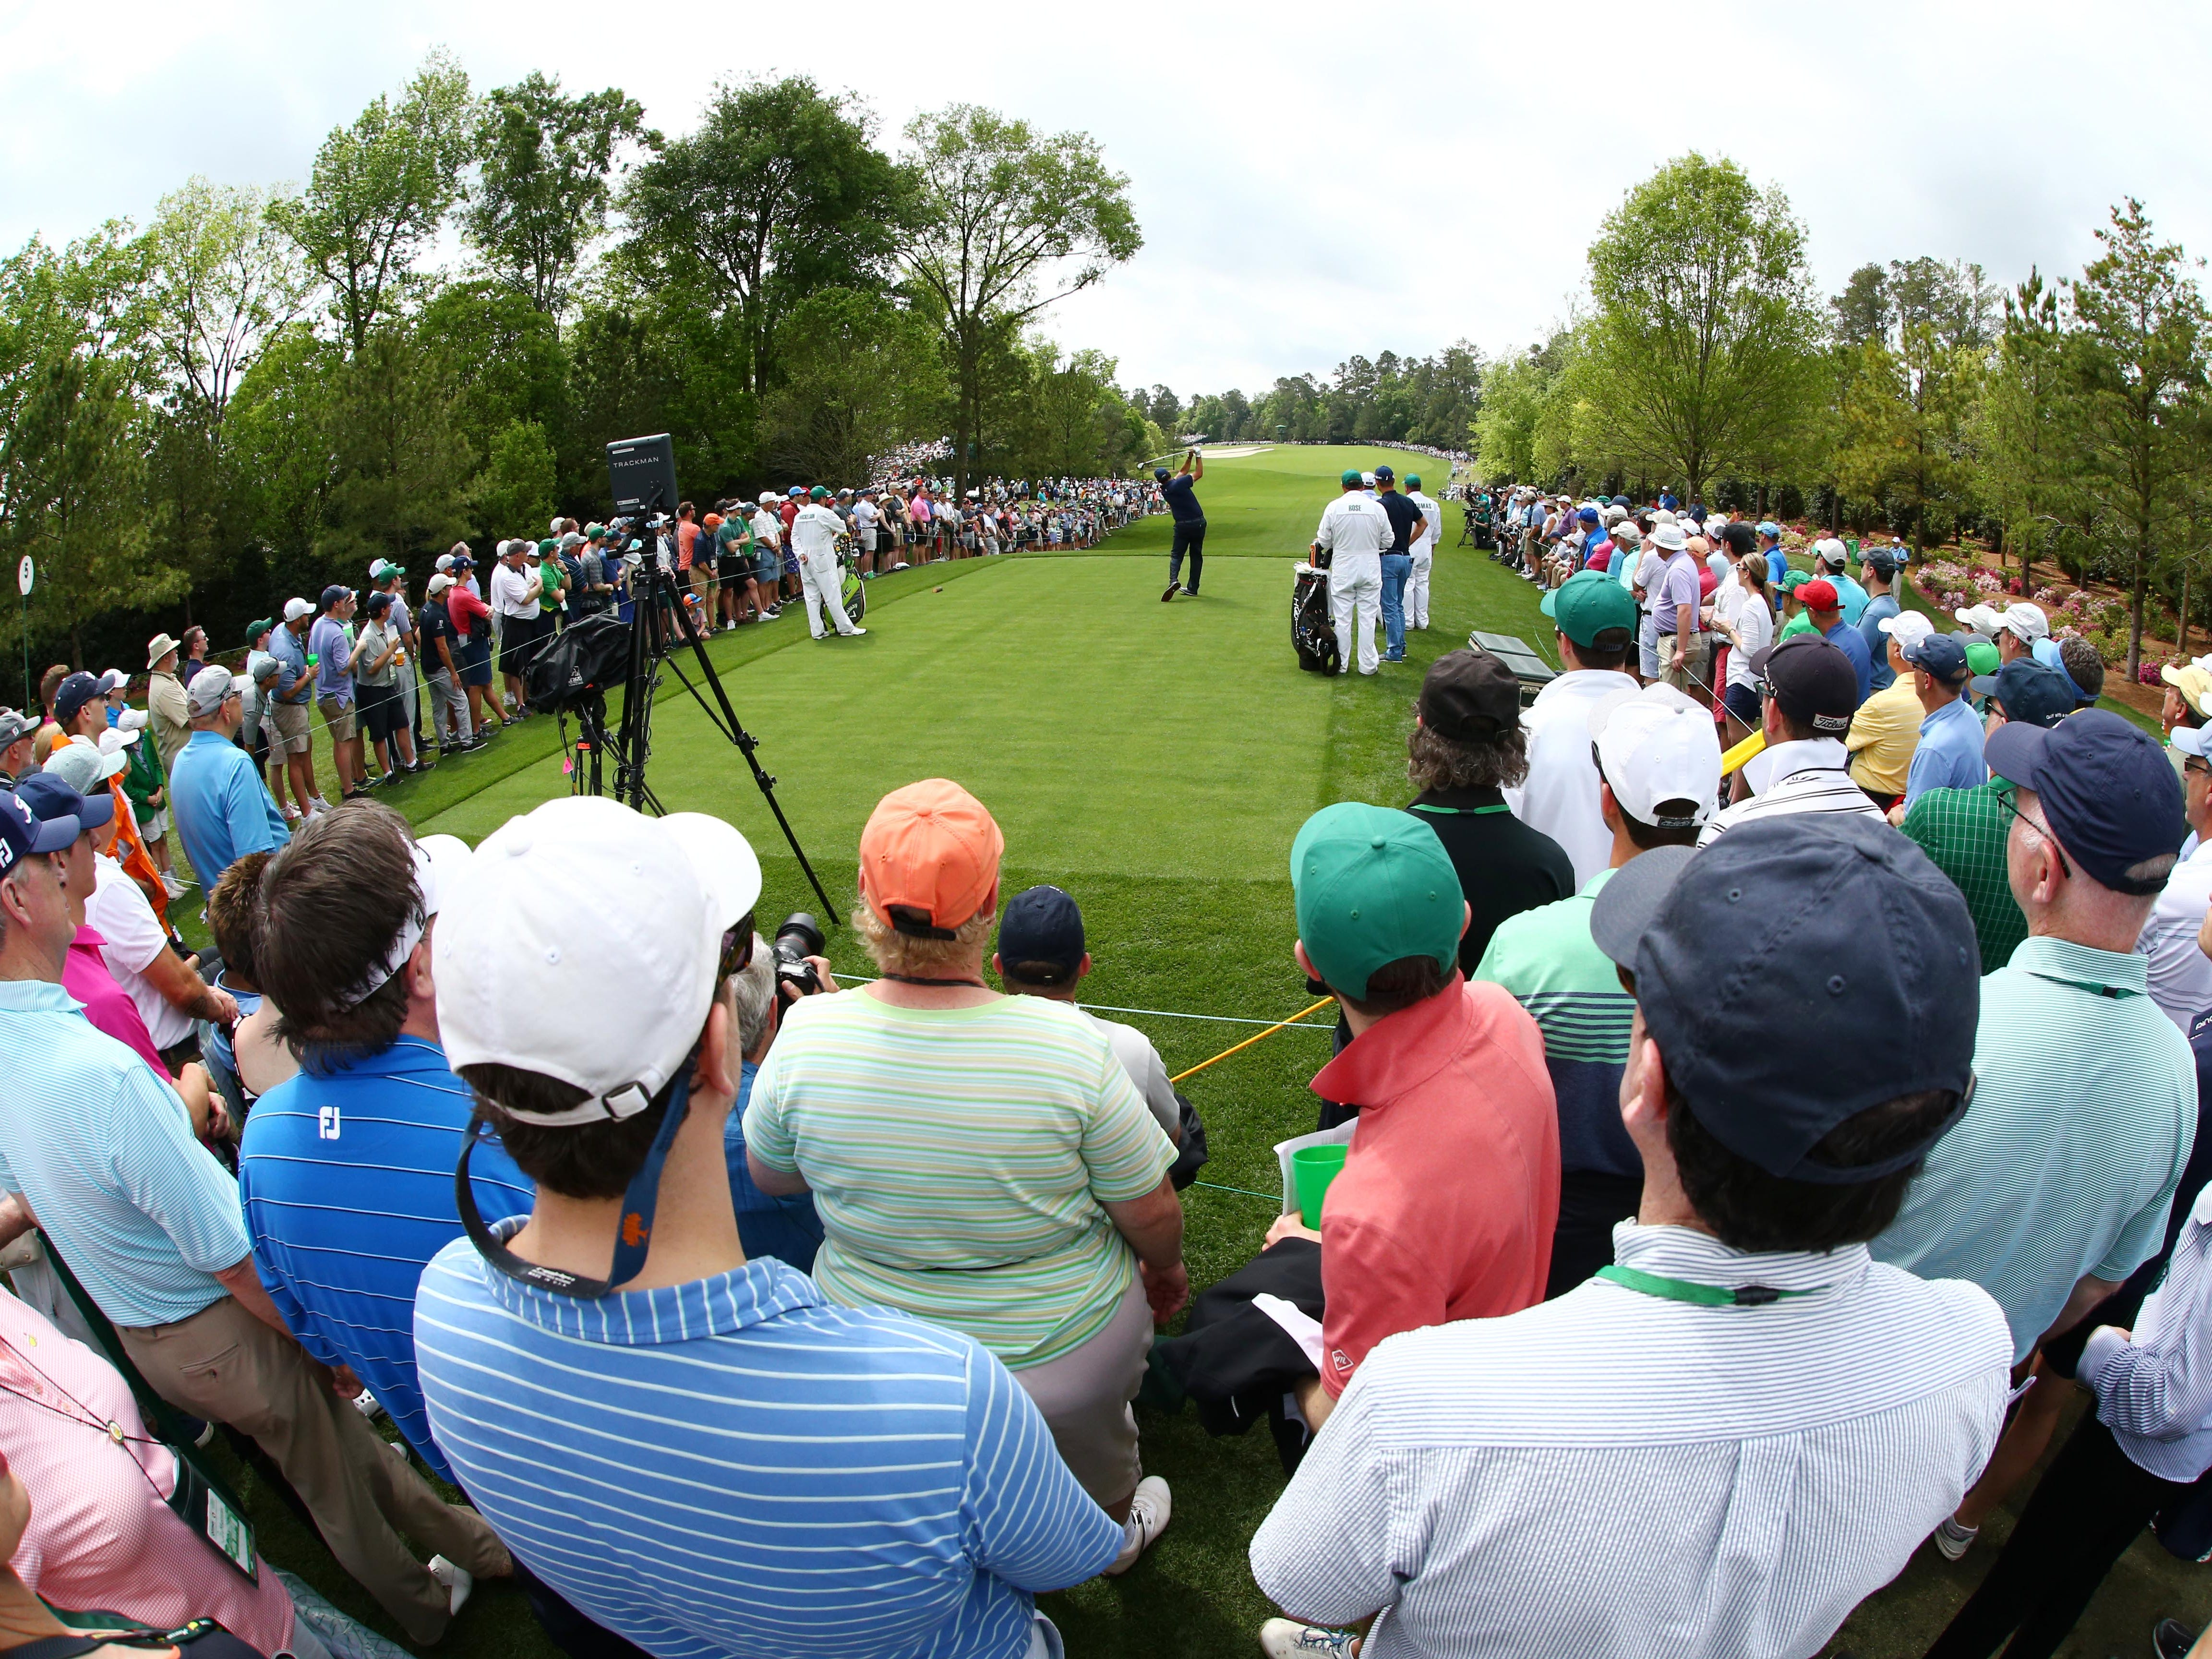 Apr 12, 2019; Augusta, GA, USA; Phil Mickelson hits his tee shot on the 5th hole  during the second round of The Masters golf tournament at Augusta National Golf Club. Mandatory Credit: Rob Schumacher-USA TODAY Sports